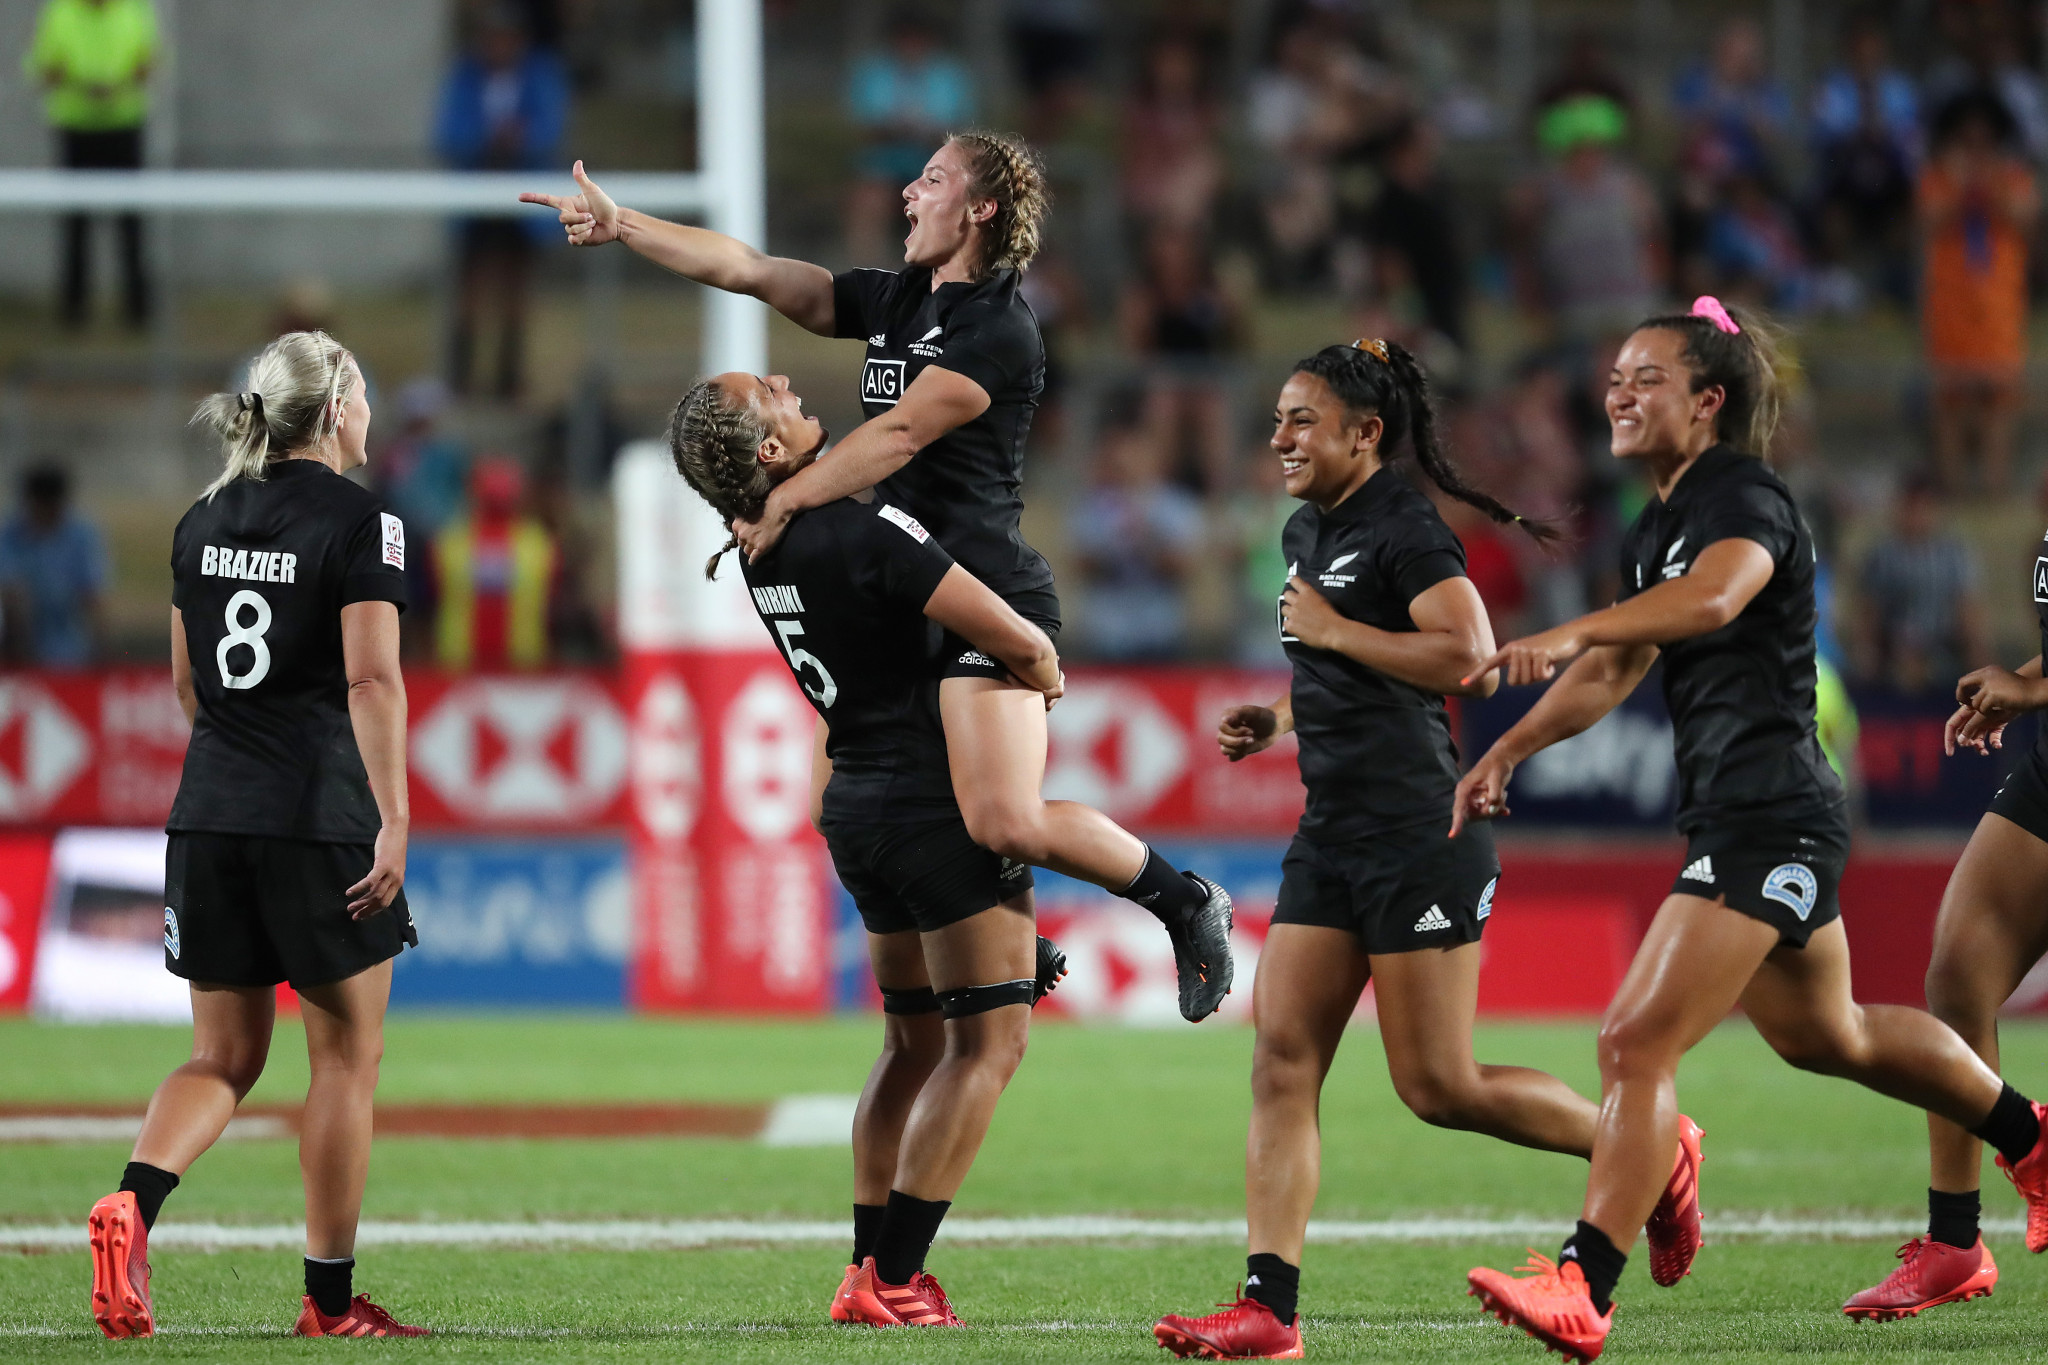 New Zealand out to continue sensational form as World Rugby Women's Sevens Series heads to Sydney